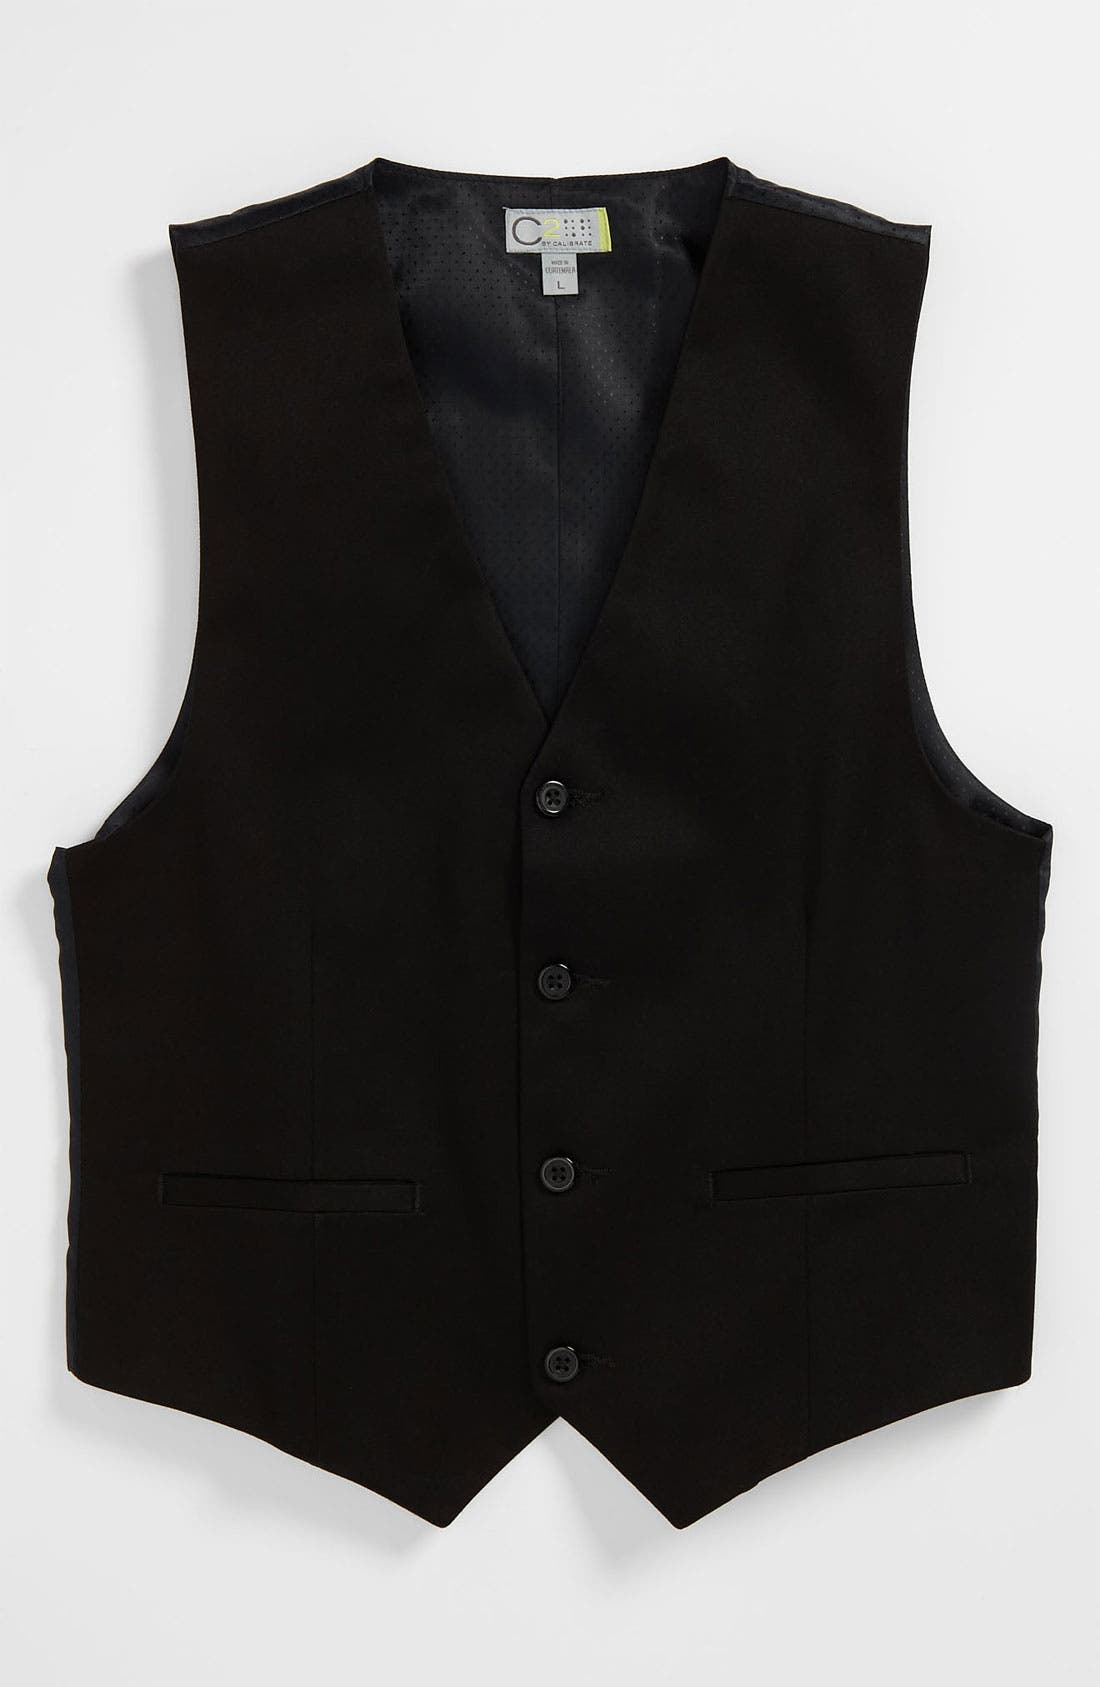 Alternate Image 1 Selected - C2 by Calibrate 'Cash' Vest (Big Boys)